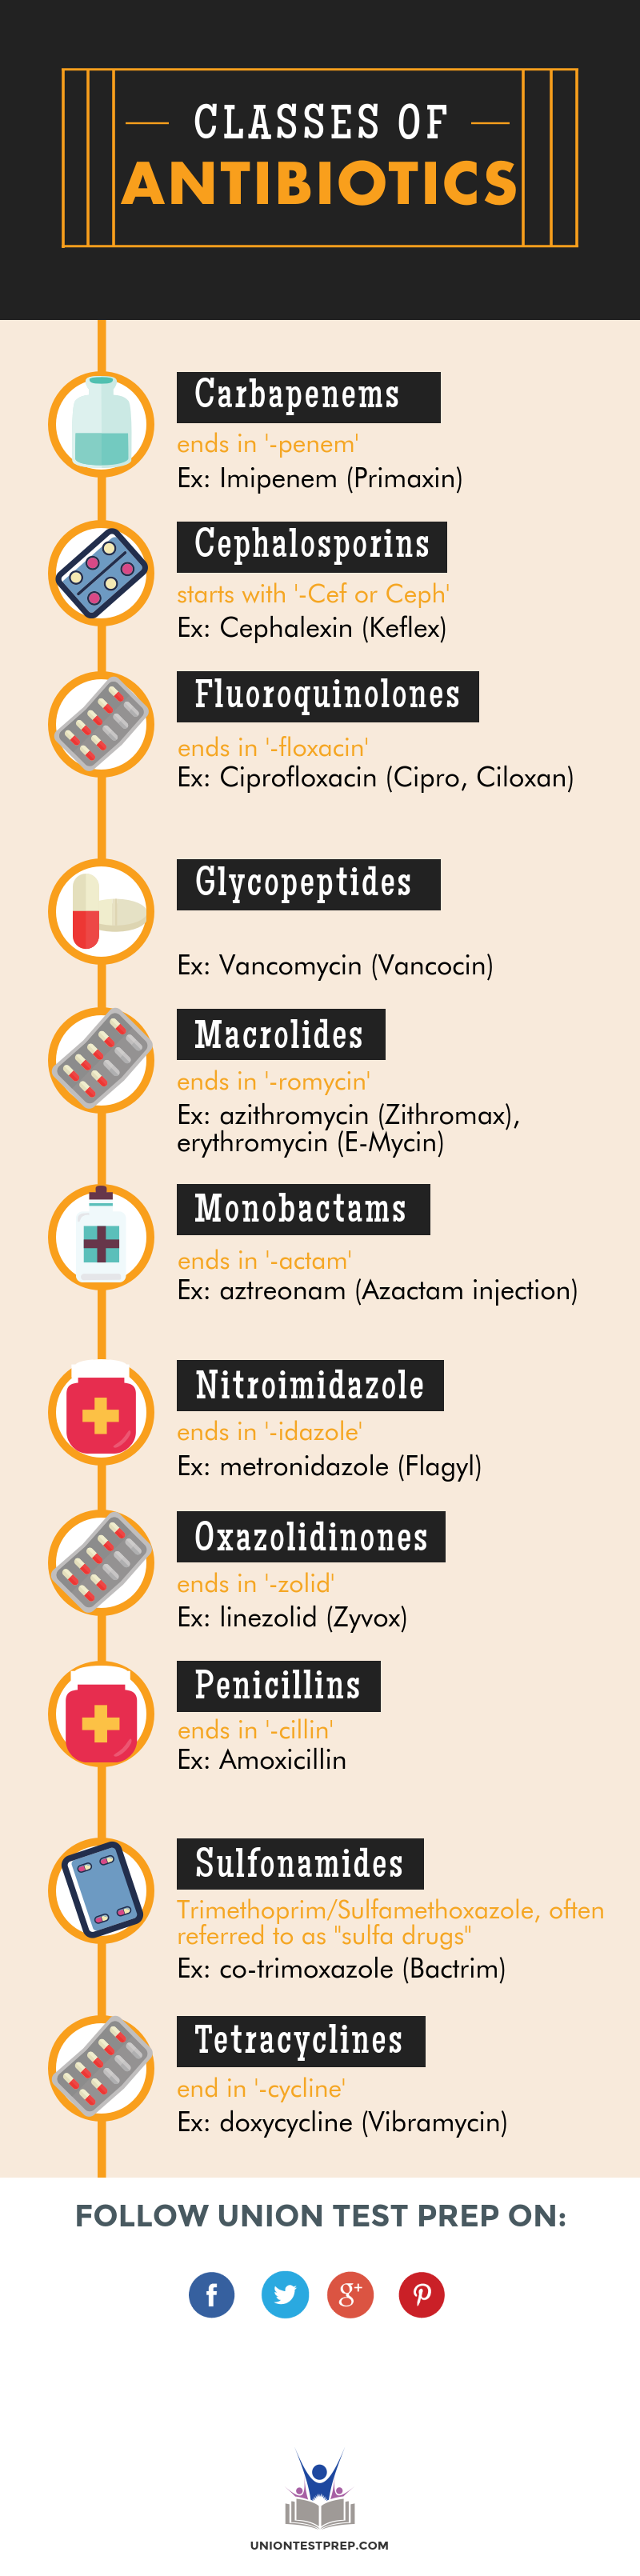 All about the different classes of antibiotics ptcb pharmacy all about the different classes of antibiotics xflitez Choice Image